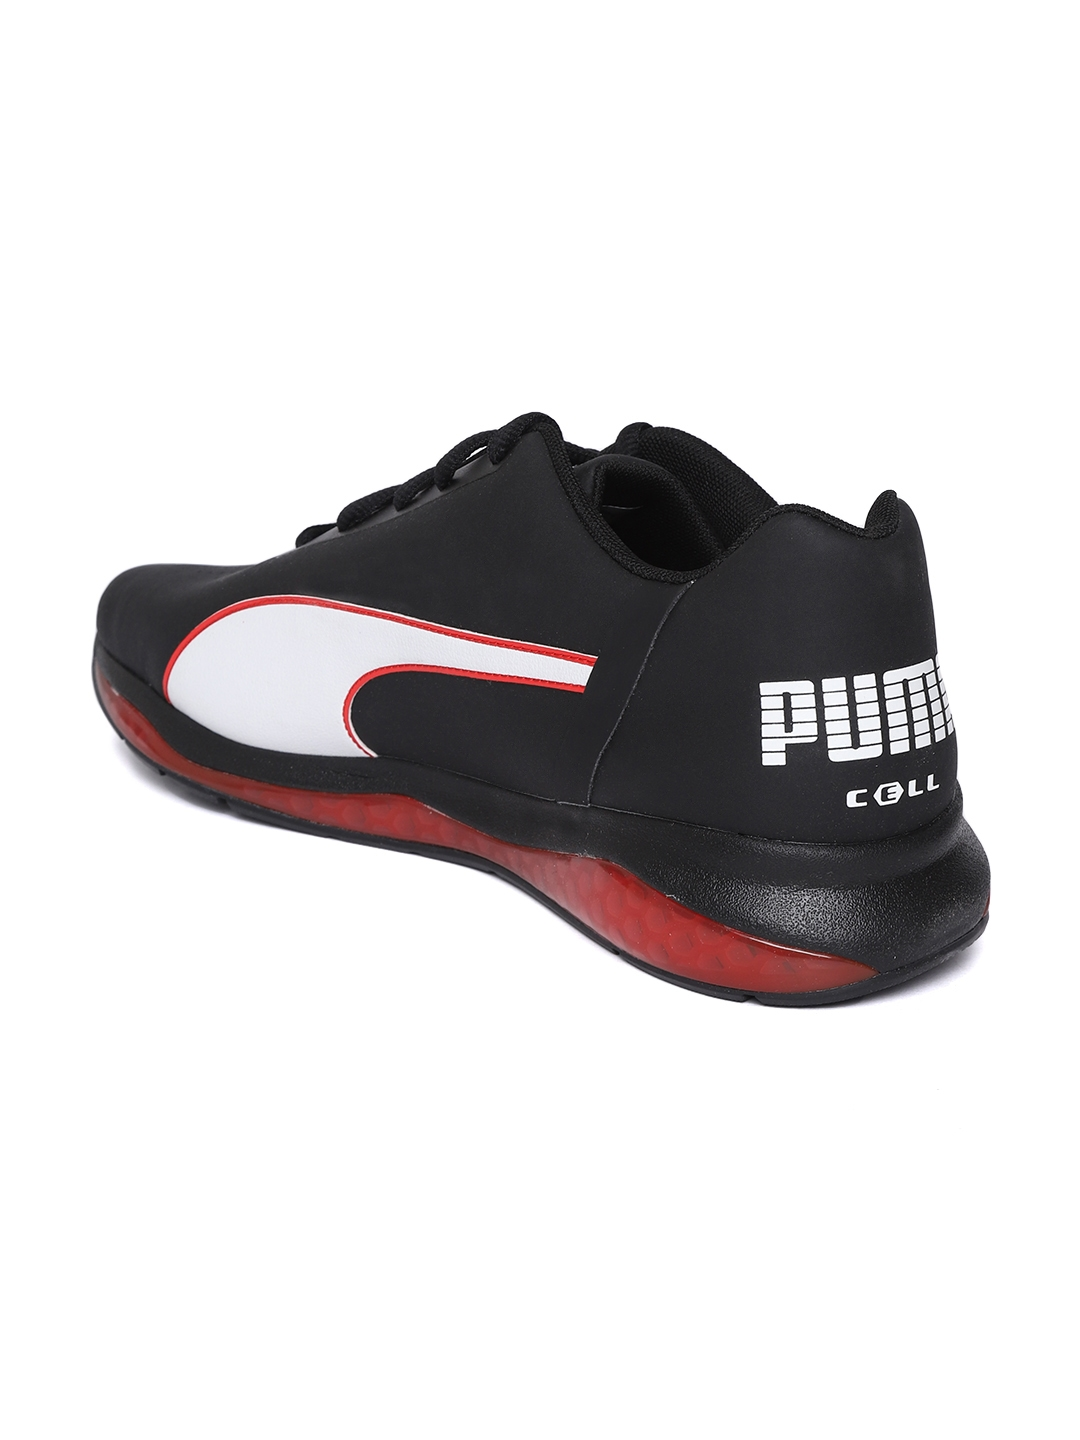 Buy Puma Unisex Black Cell Ultimate SL Running Shoes - Sports Shoes ... 2a565058e